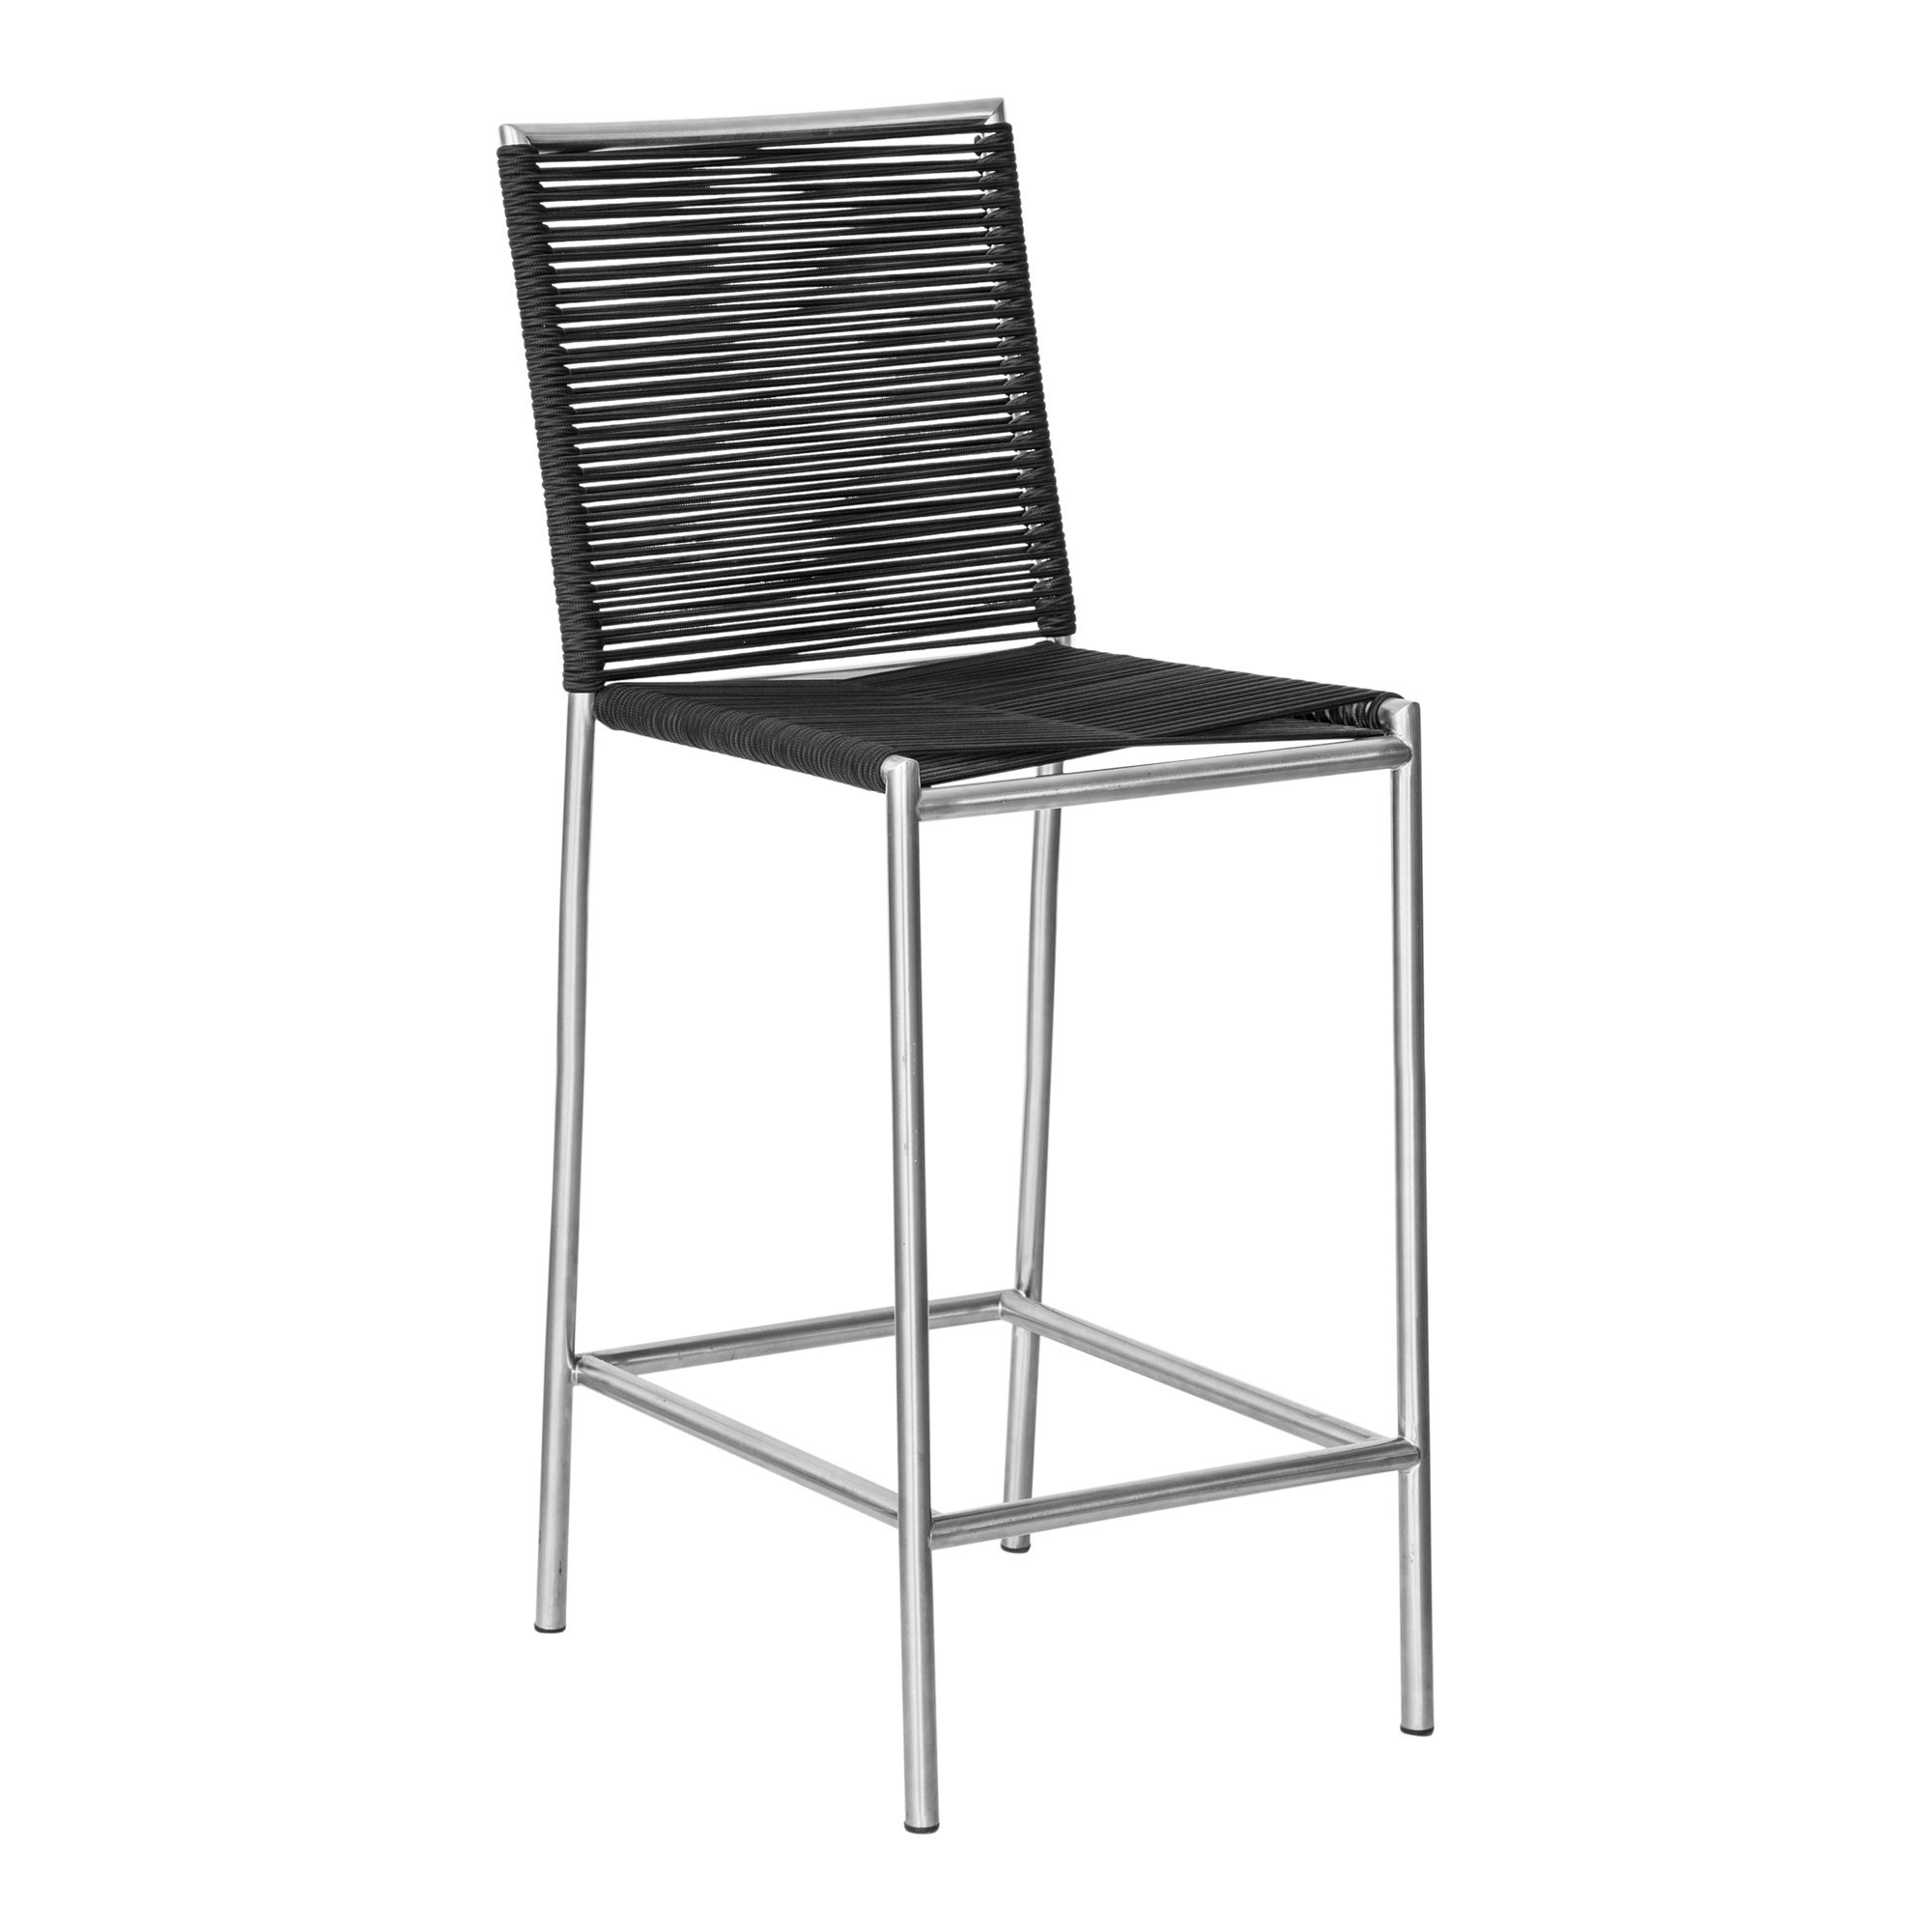 Stupendous Aurelle Home Grey Rope Seating Modern Outdoor Barstool Andrewgaddart Wooden Chair Designs For Living Room Andrewgaddartcom